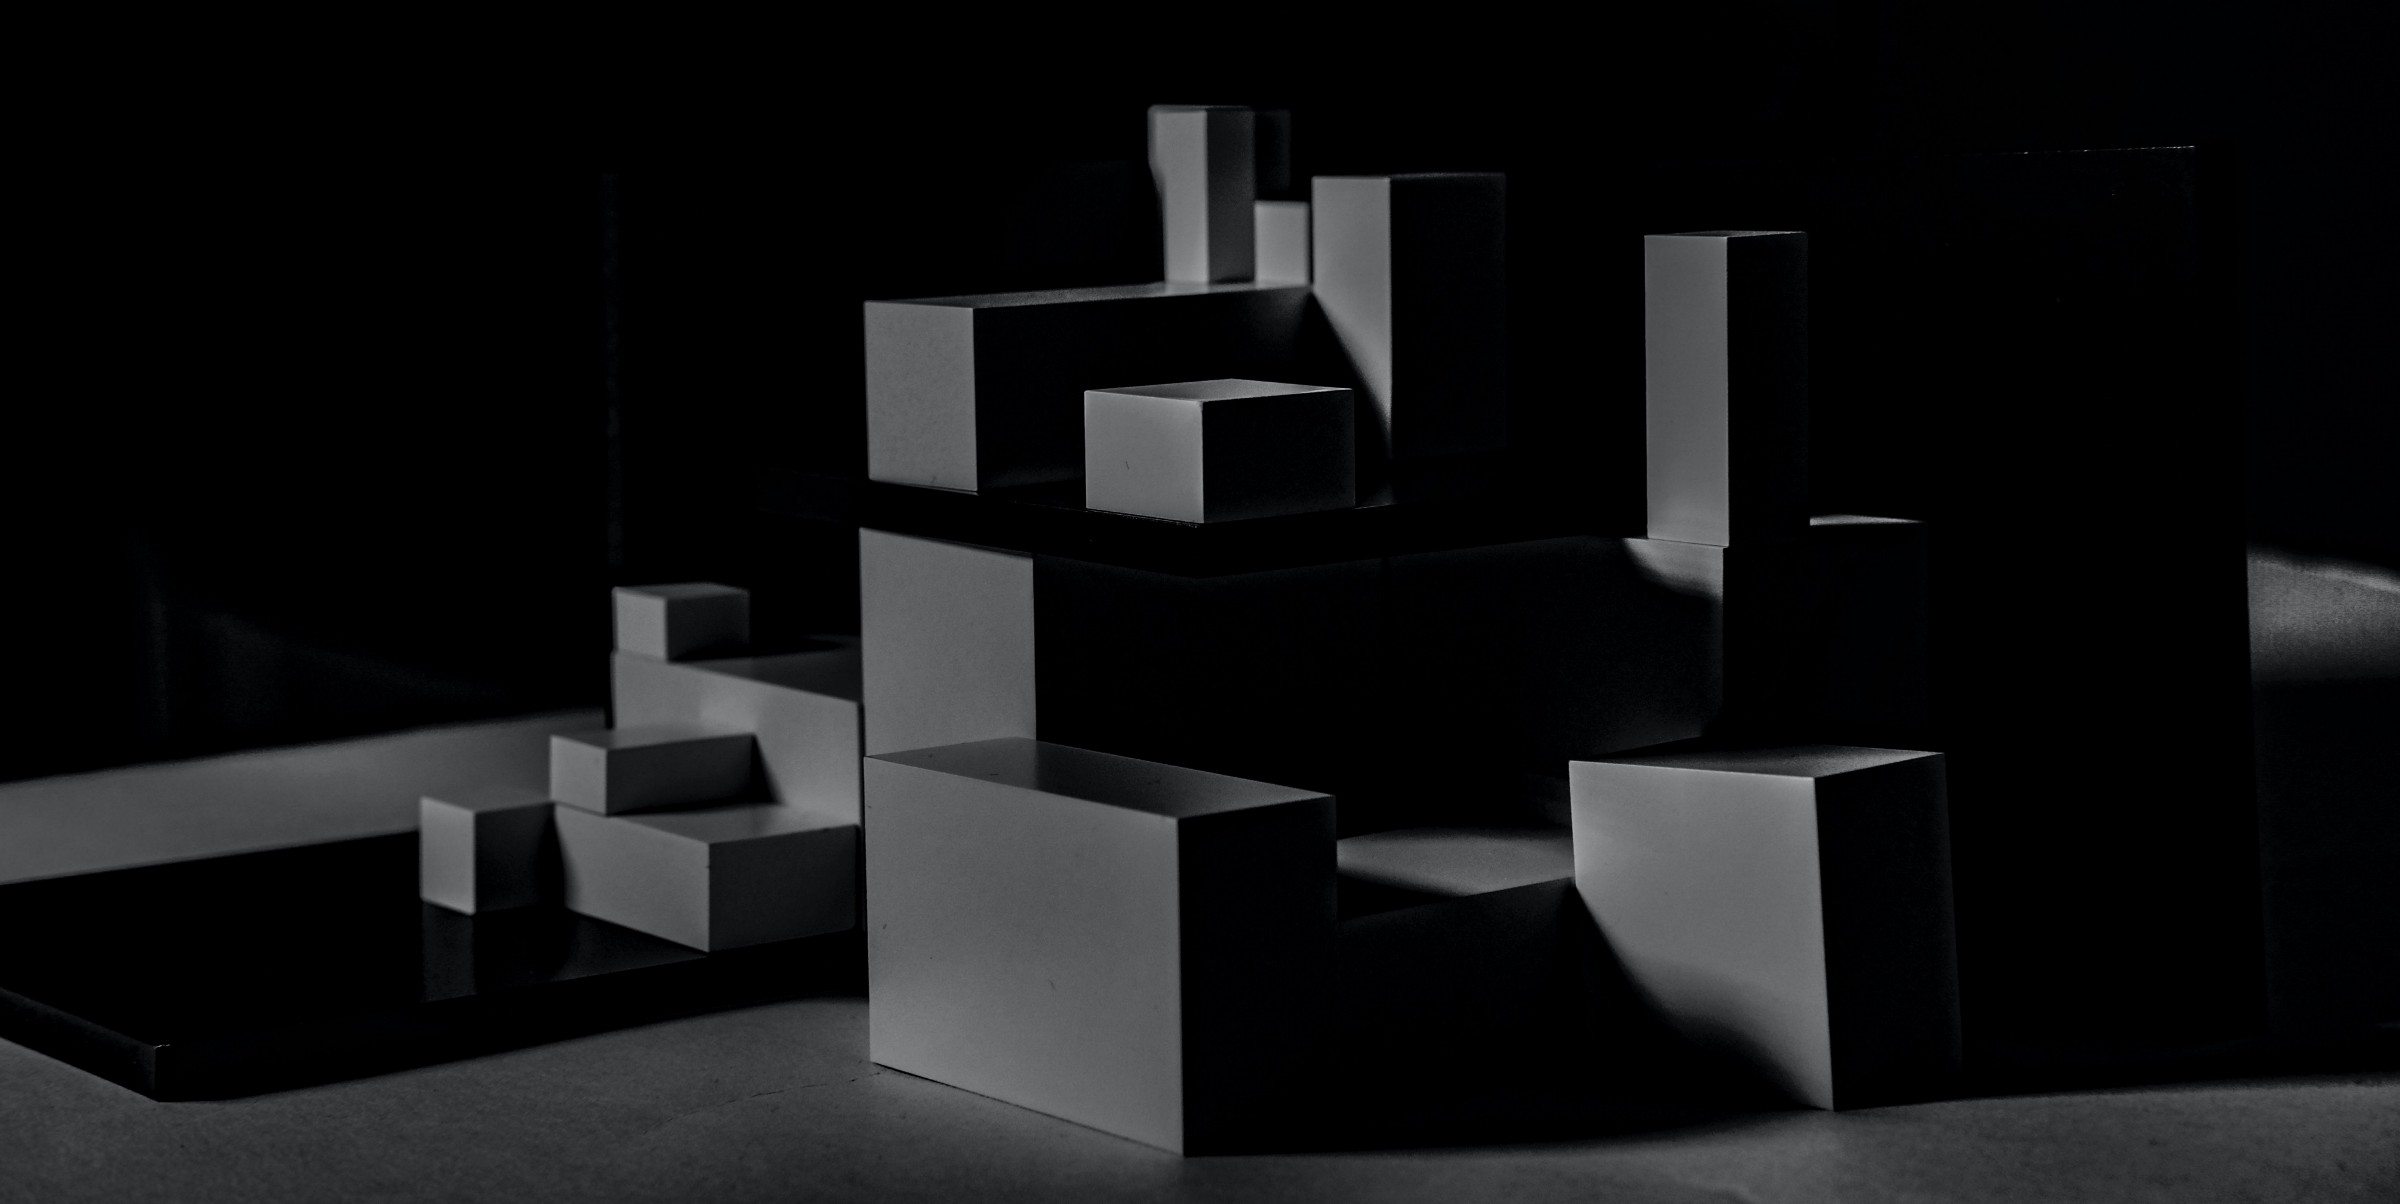 Abstract image of black boxes